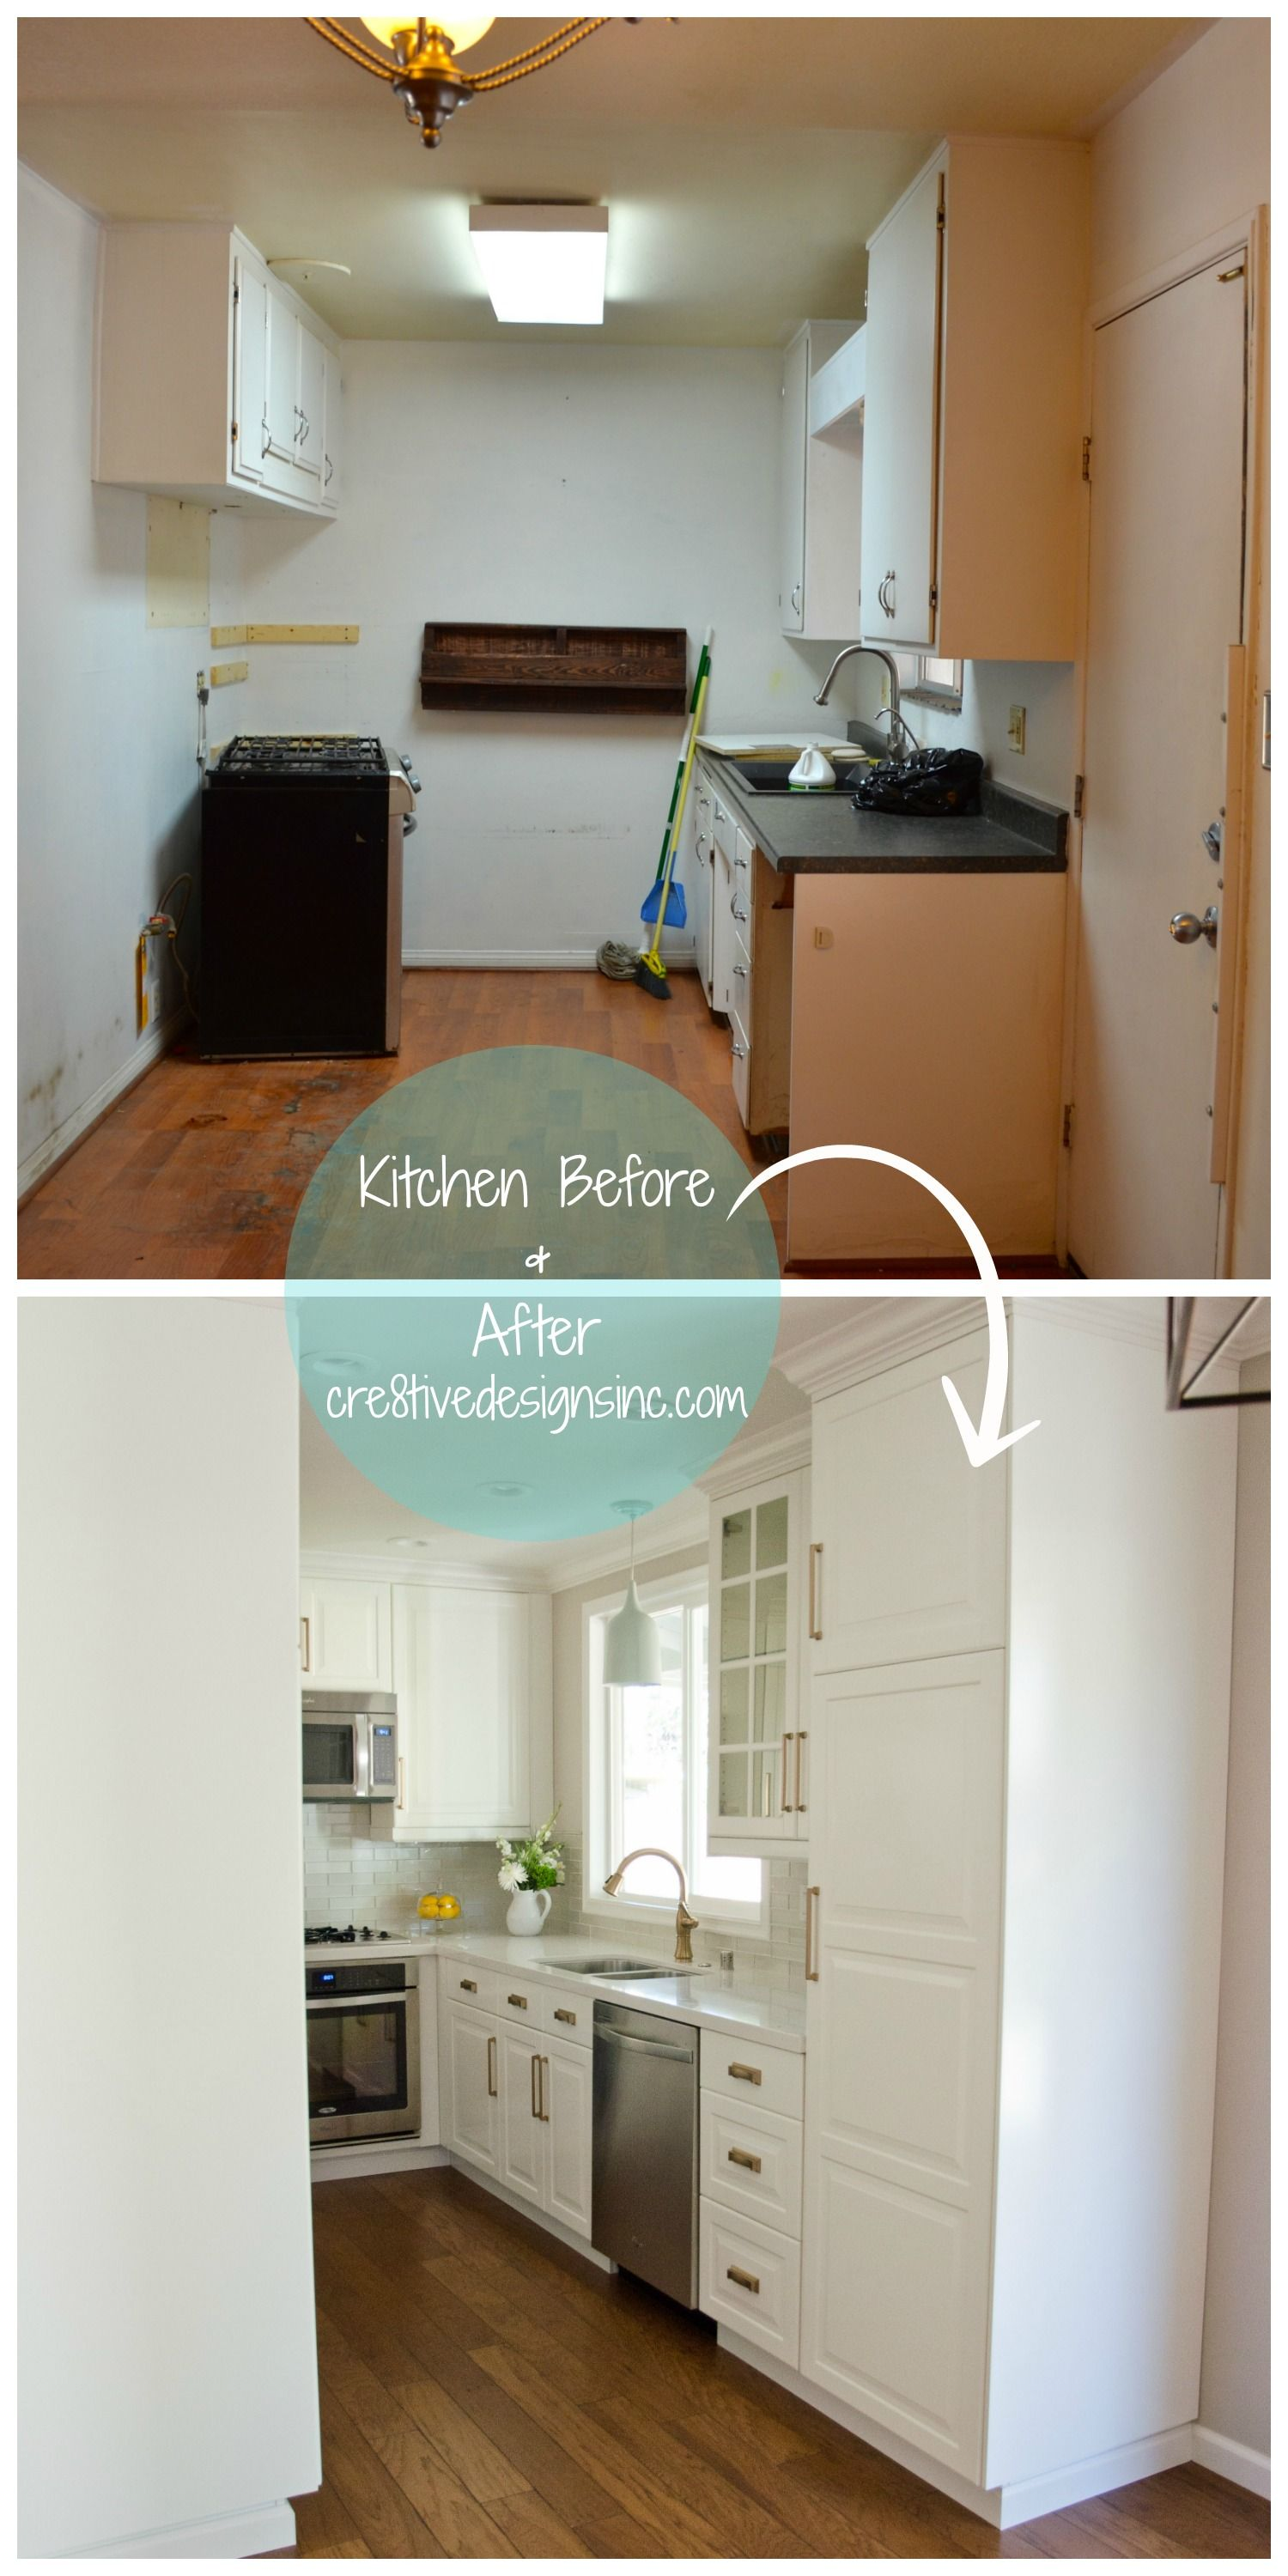 A flippinu awesome ikea kitchen makeover home pinterest